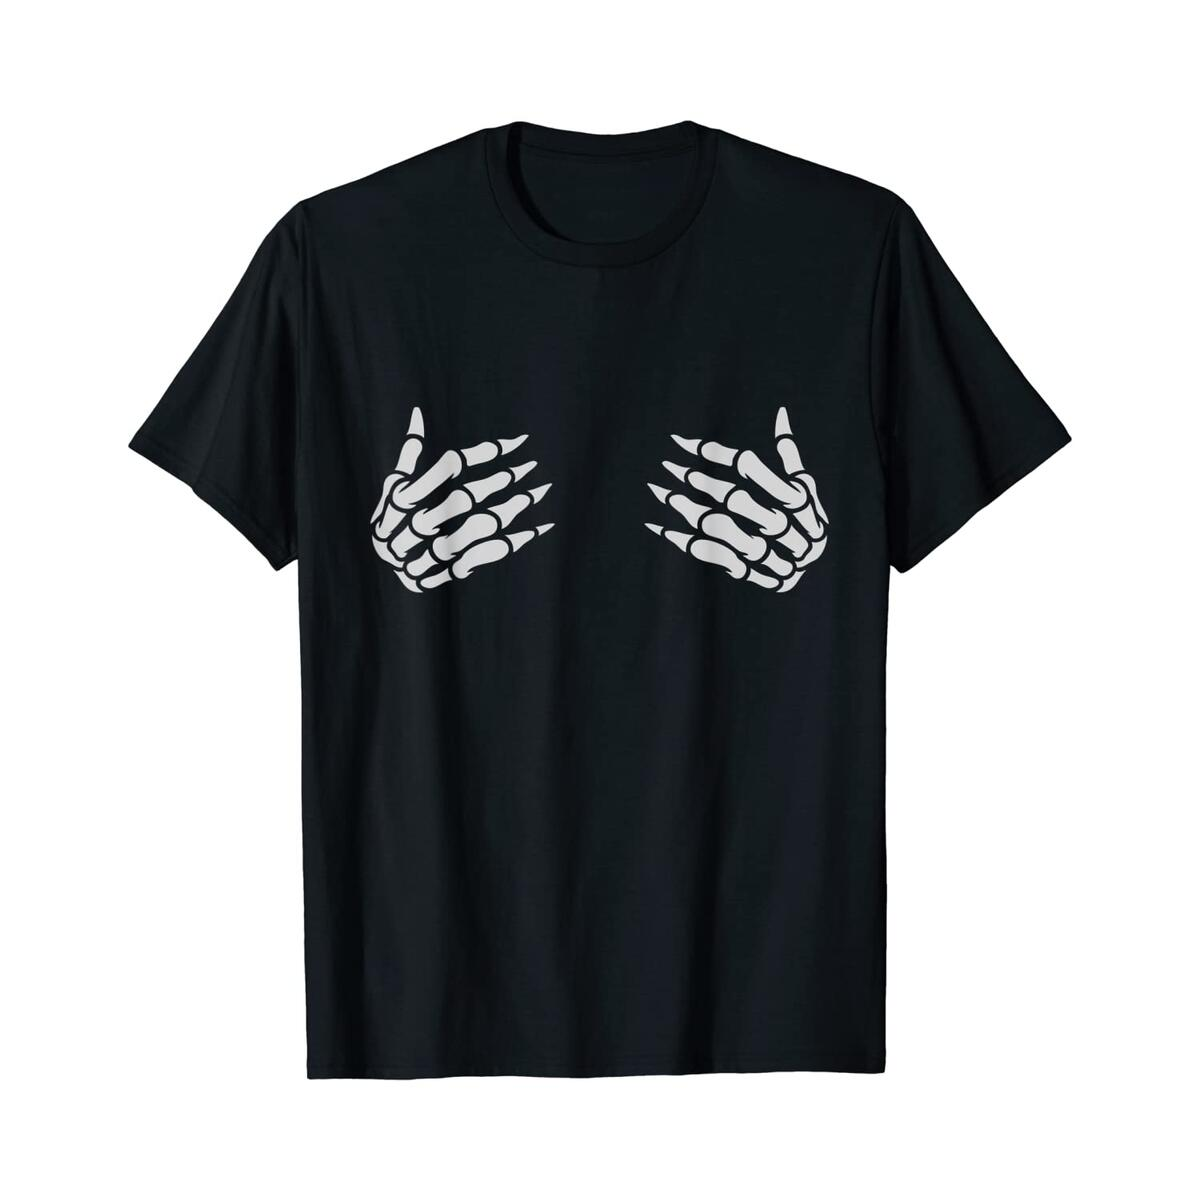 Skeleton Shirt (Any Size/Color)